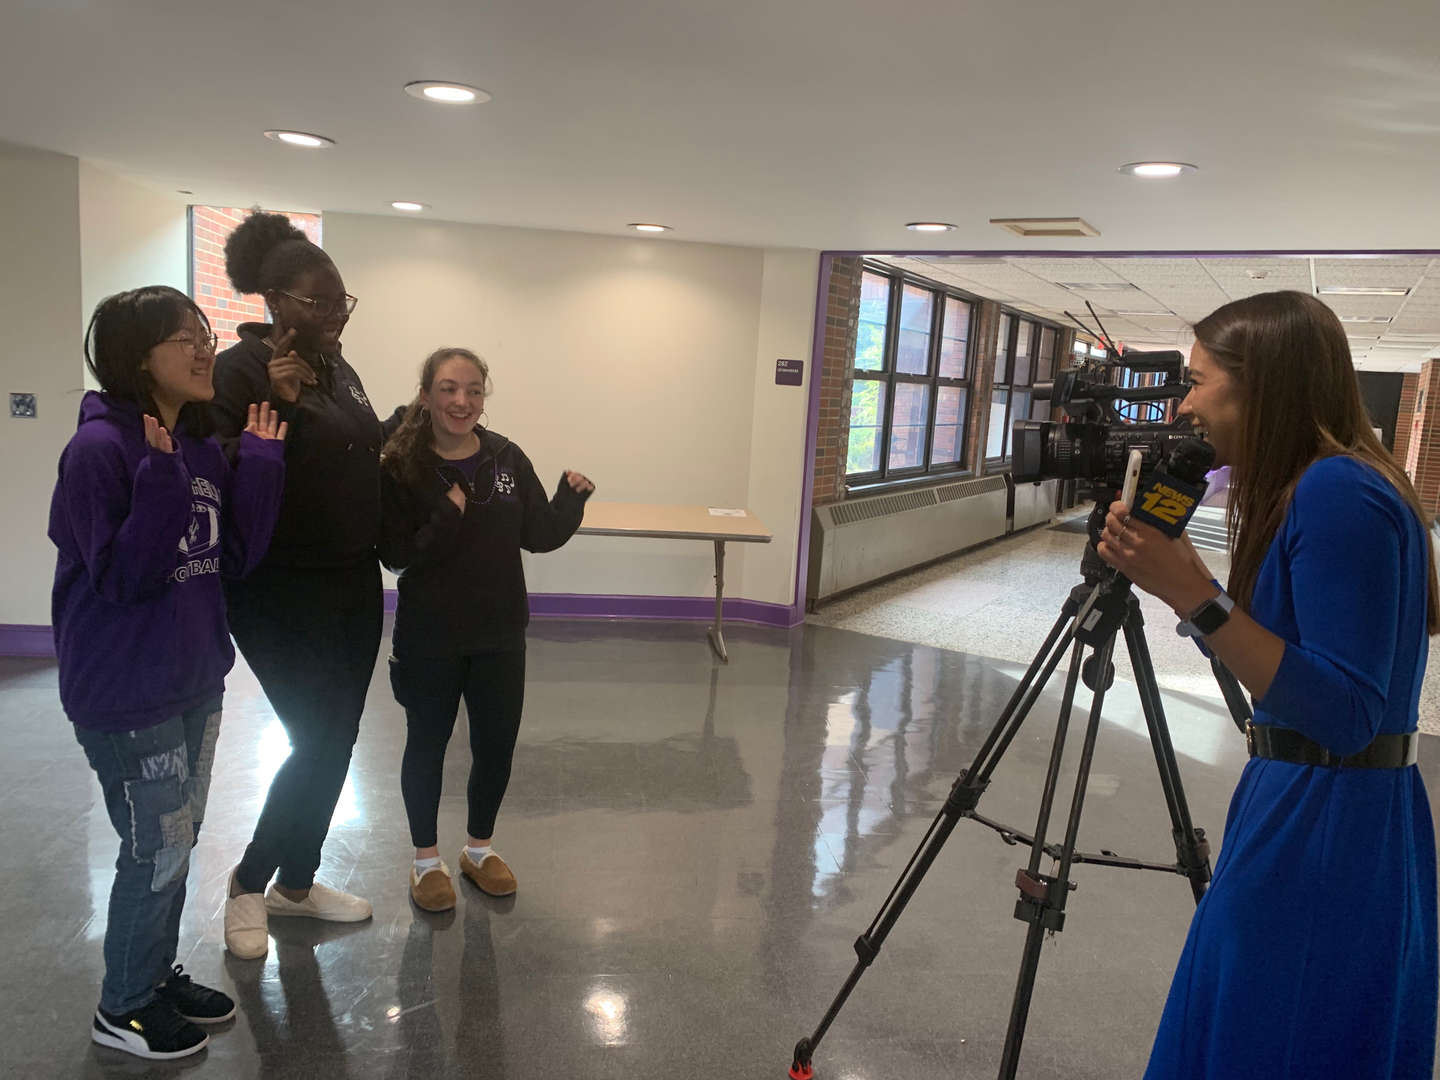 News 12 reporter talking with three New Rochelle High School students.